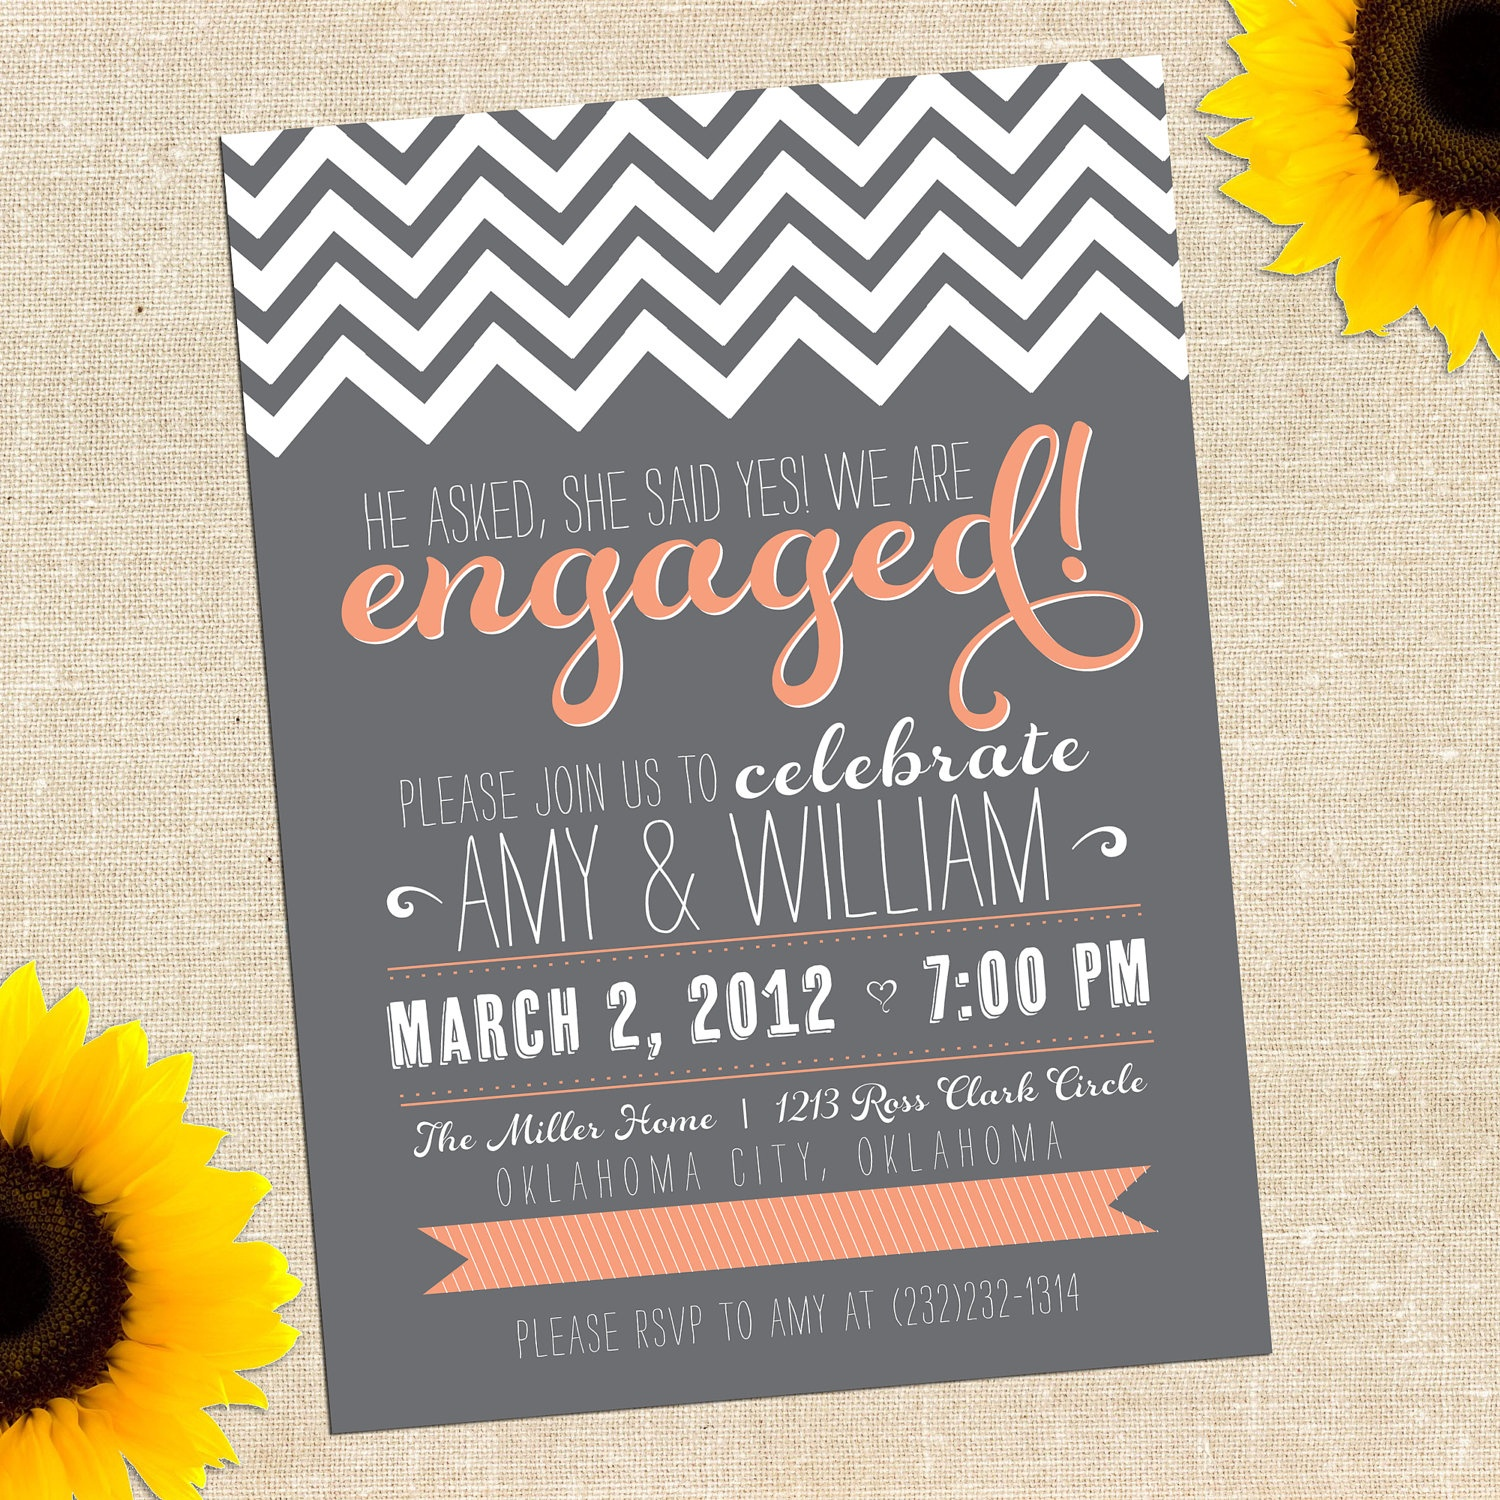 Free Printable Engagement Party Invitations - Layoffsn - Free Printable Engagement Party Invitations